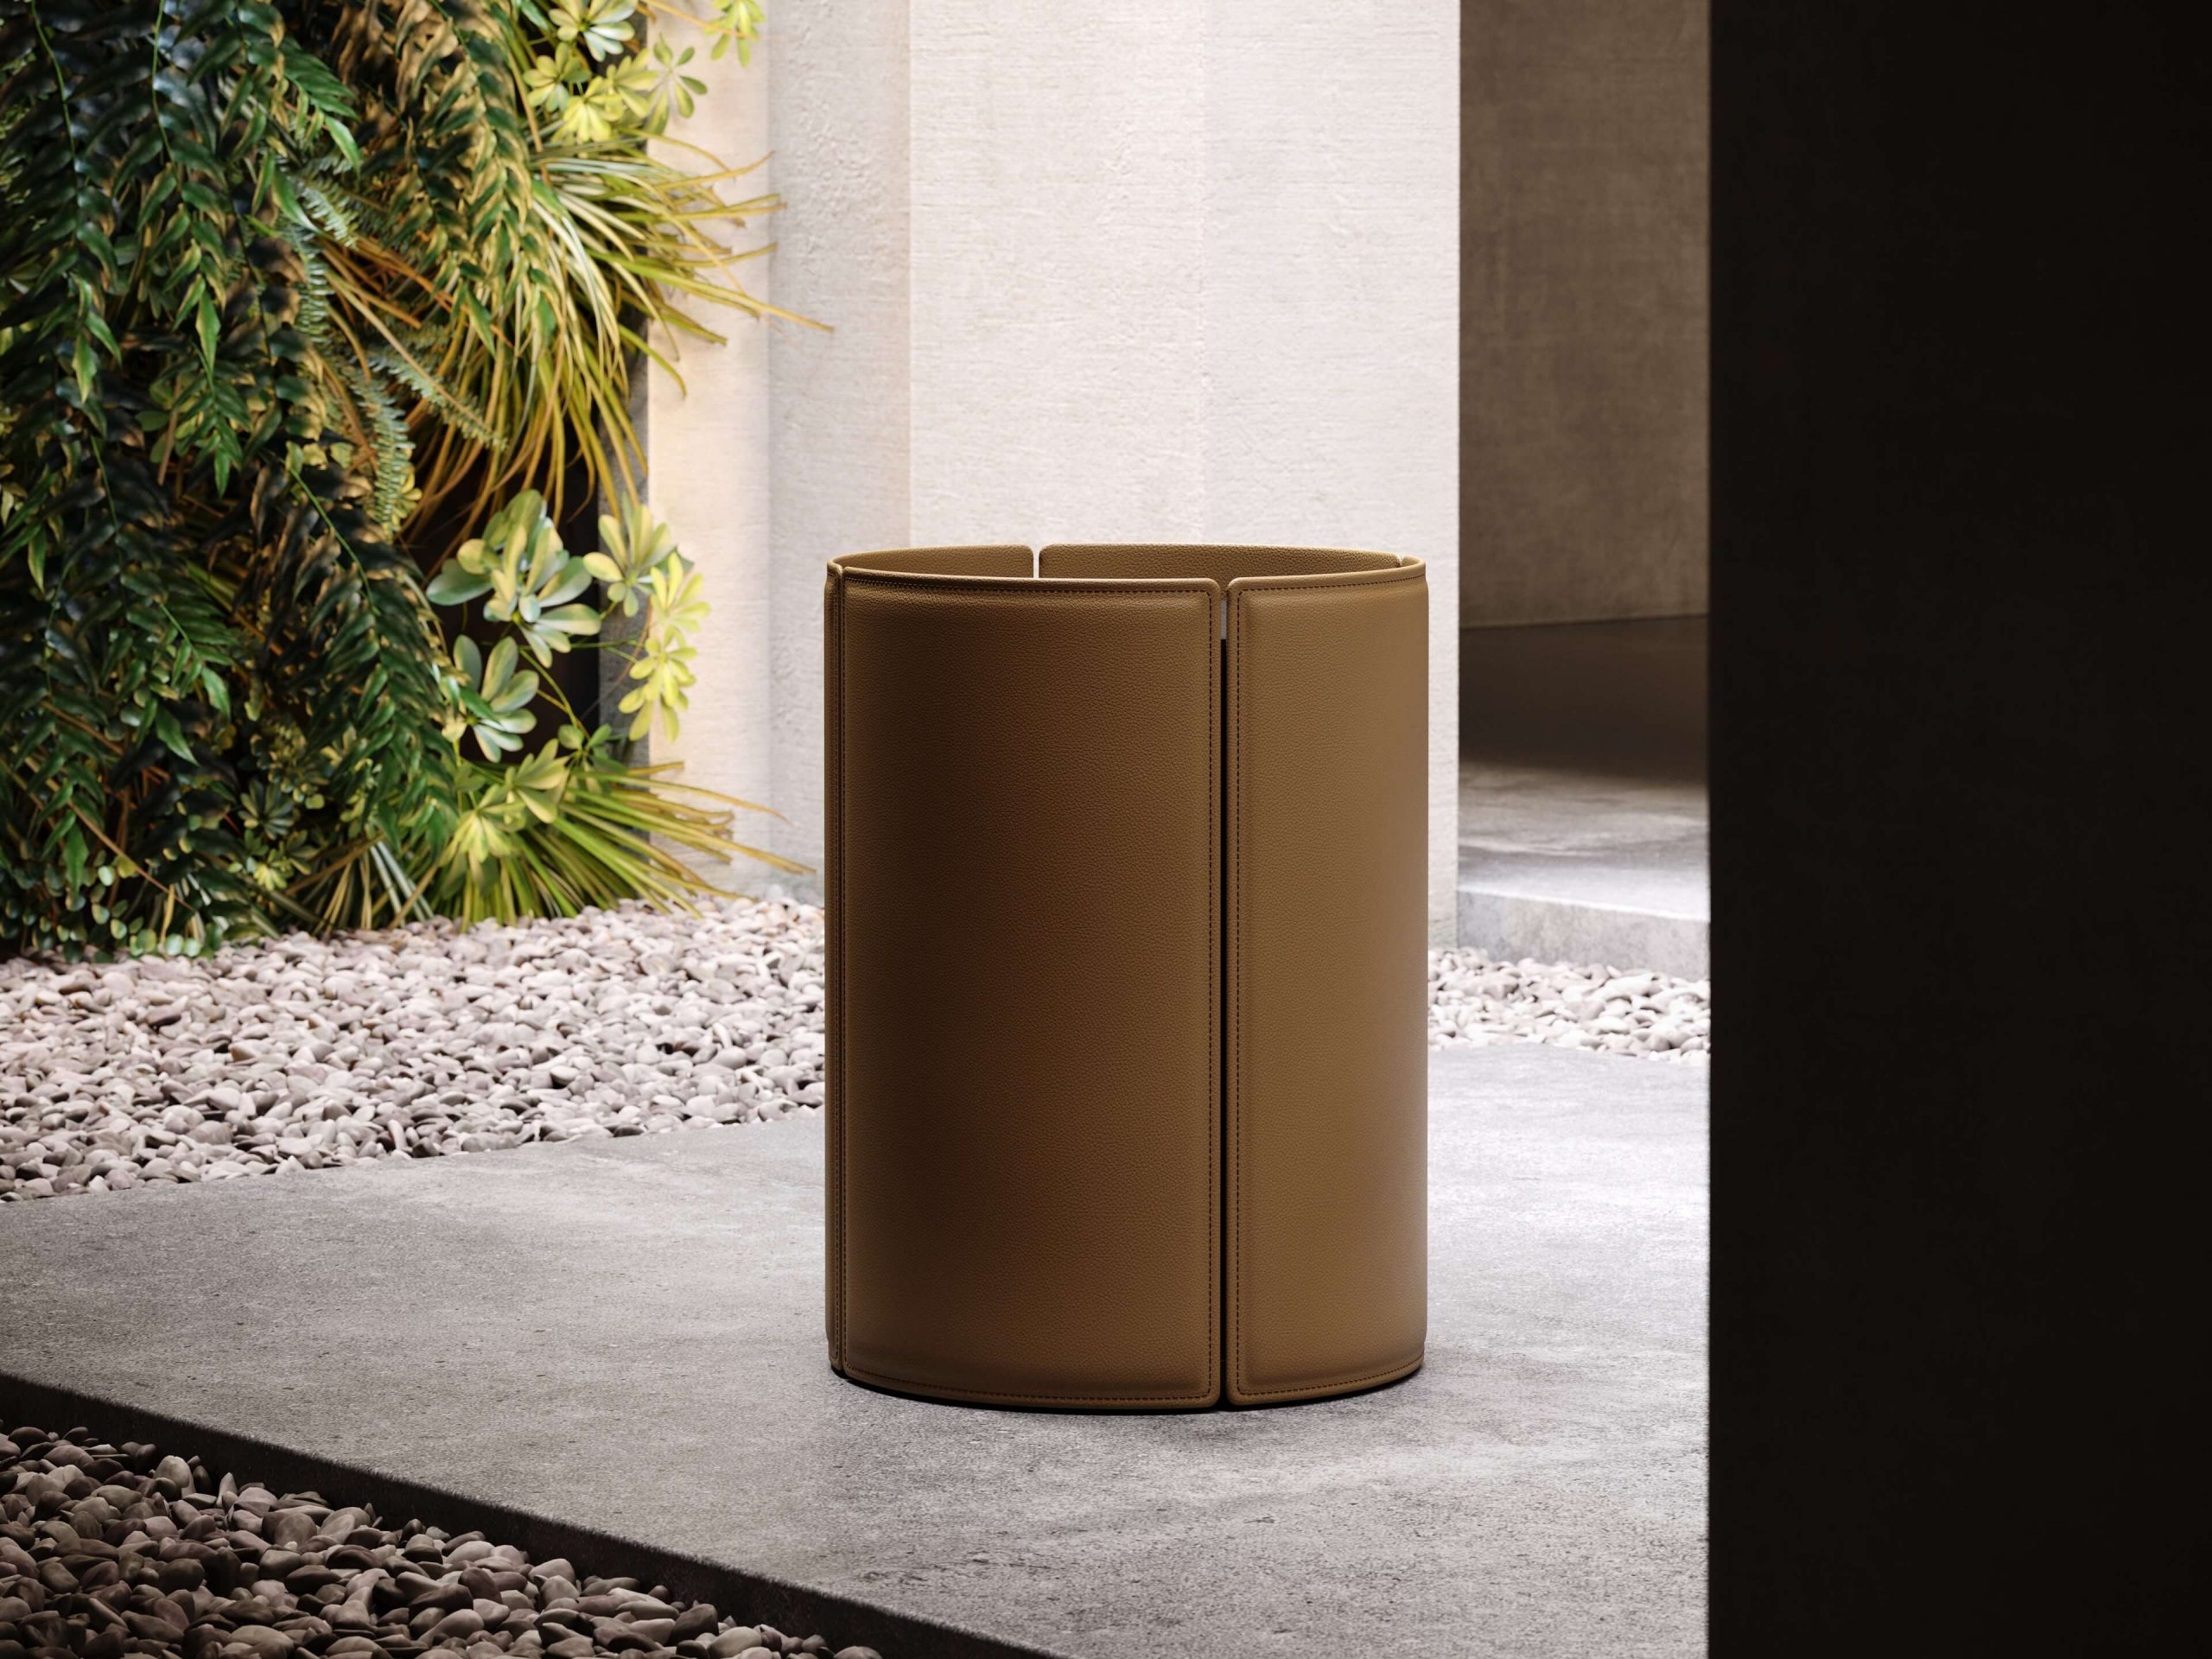 mano-side-table-velvet-wood-top-living-room-home-decor-domkapa